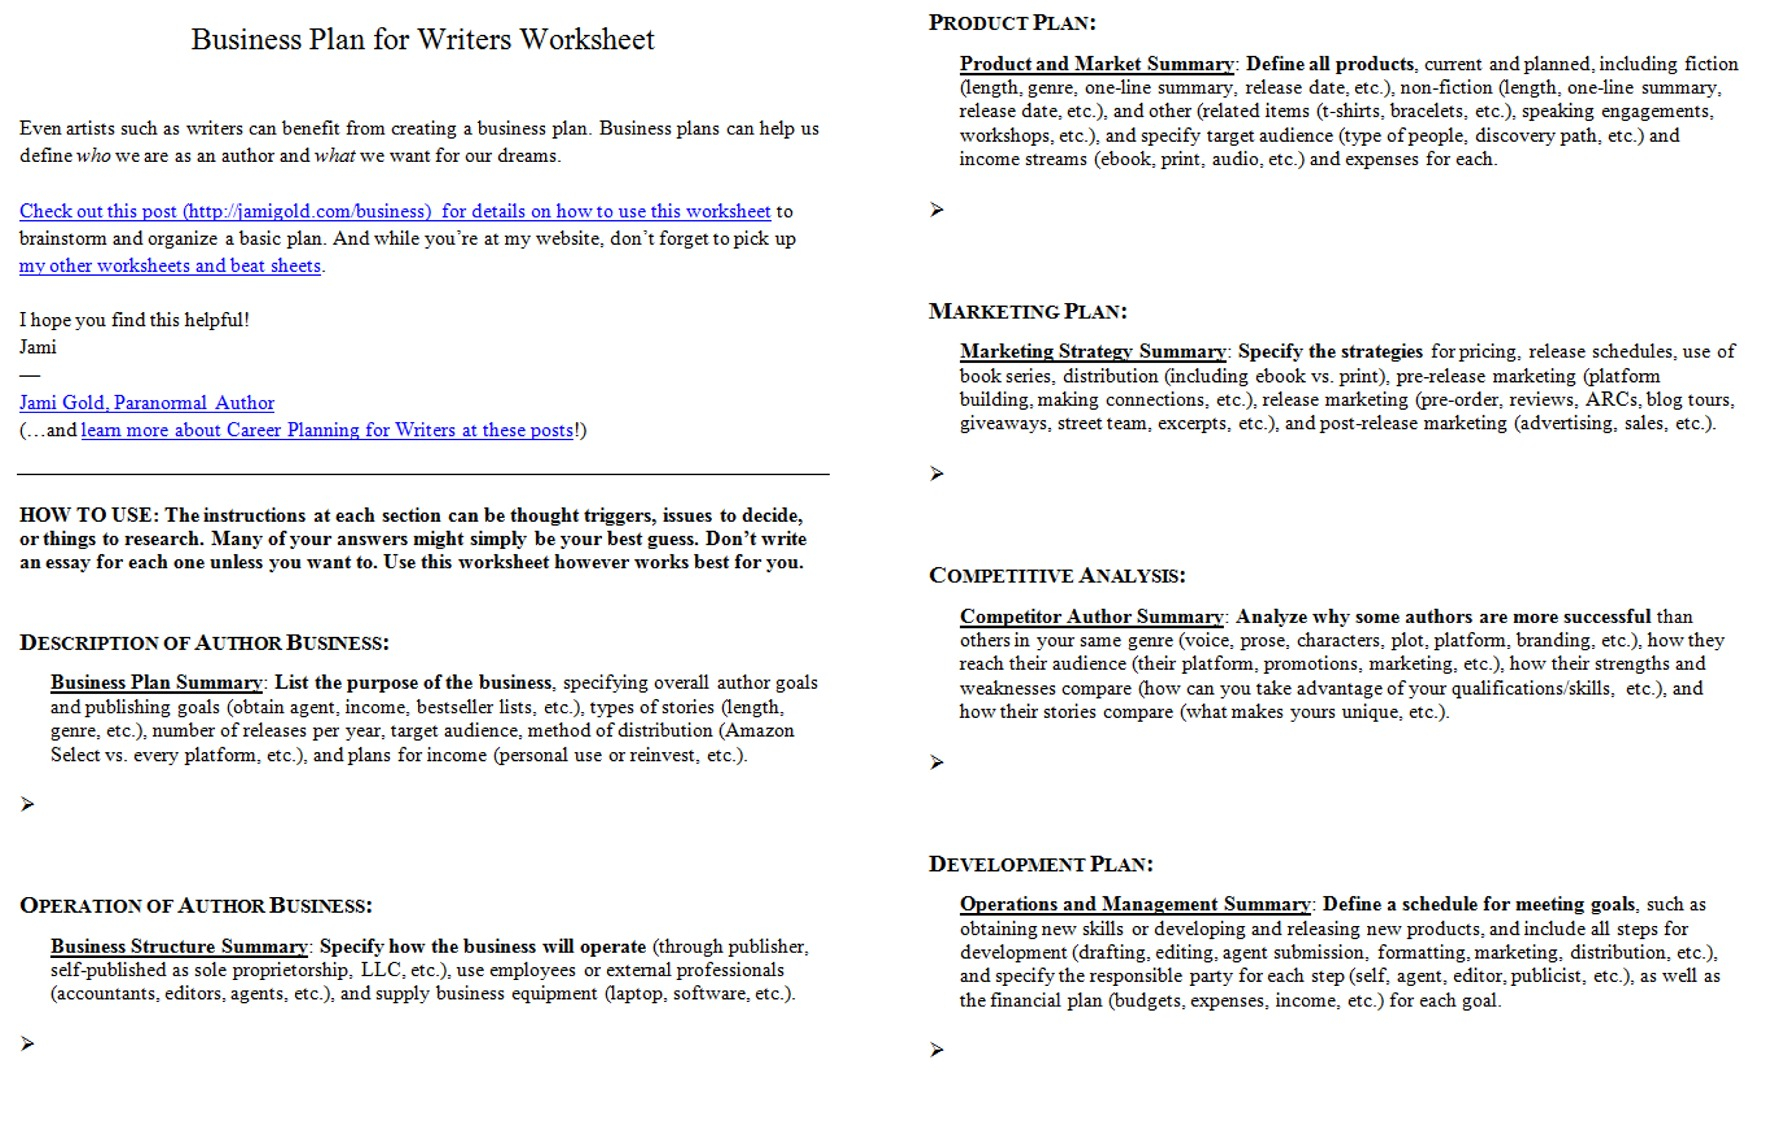 Weirdmailus  Pretty Worksheets For Writers  Jami Gold Paranormal Author With Great Screen Shot Of Both Pages Of The Business Plan For Writers Worksheet With Attractive Compound Words Worksheets For Grade  Also Practice Writing Worksheets For St Grade In Addition Grammar Prepositions Worksheets And Human Body Organs Worksheet As Well As Mixture Worksheets Additionally Measuring To The Nearest   Inch Worksheet From Jamigoldcom With Weirdmailus  Great Worksheets For Writers  Jami Gold Paranormal Author With Attractive Screen Shot Of Both Pages Of The Business Plan For Writers Worksheet And Pretty Compound Words Worksheets For Grade  Also Practice Writing Worksheets For St Grade In Addition Grammar Prepositions Worksheets From Jamigoldcom